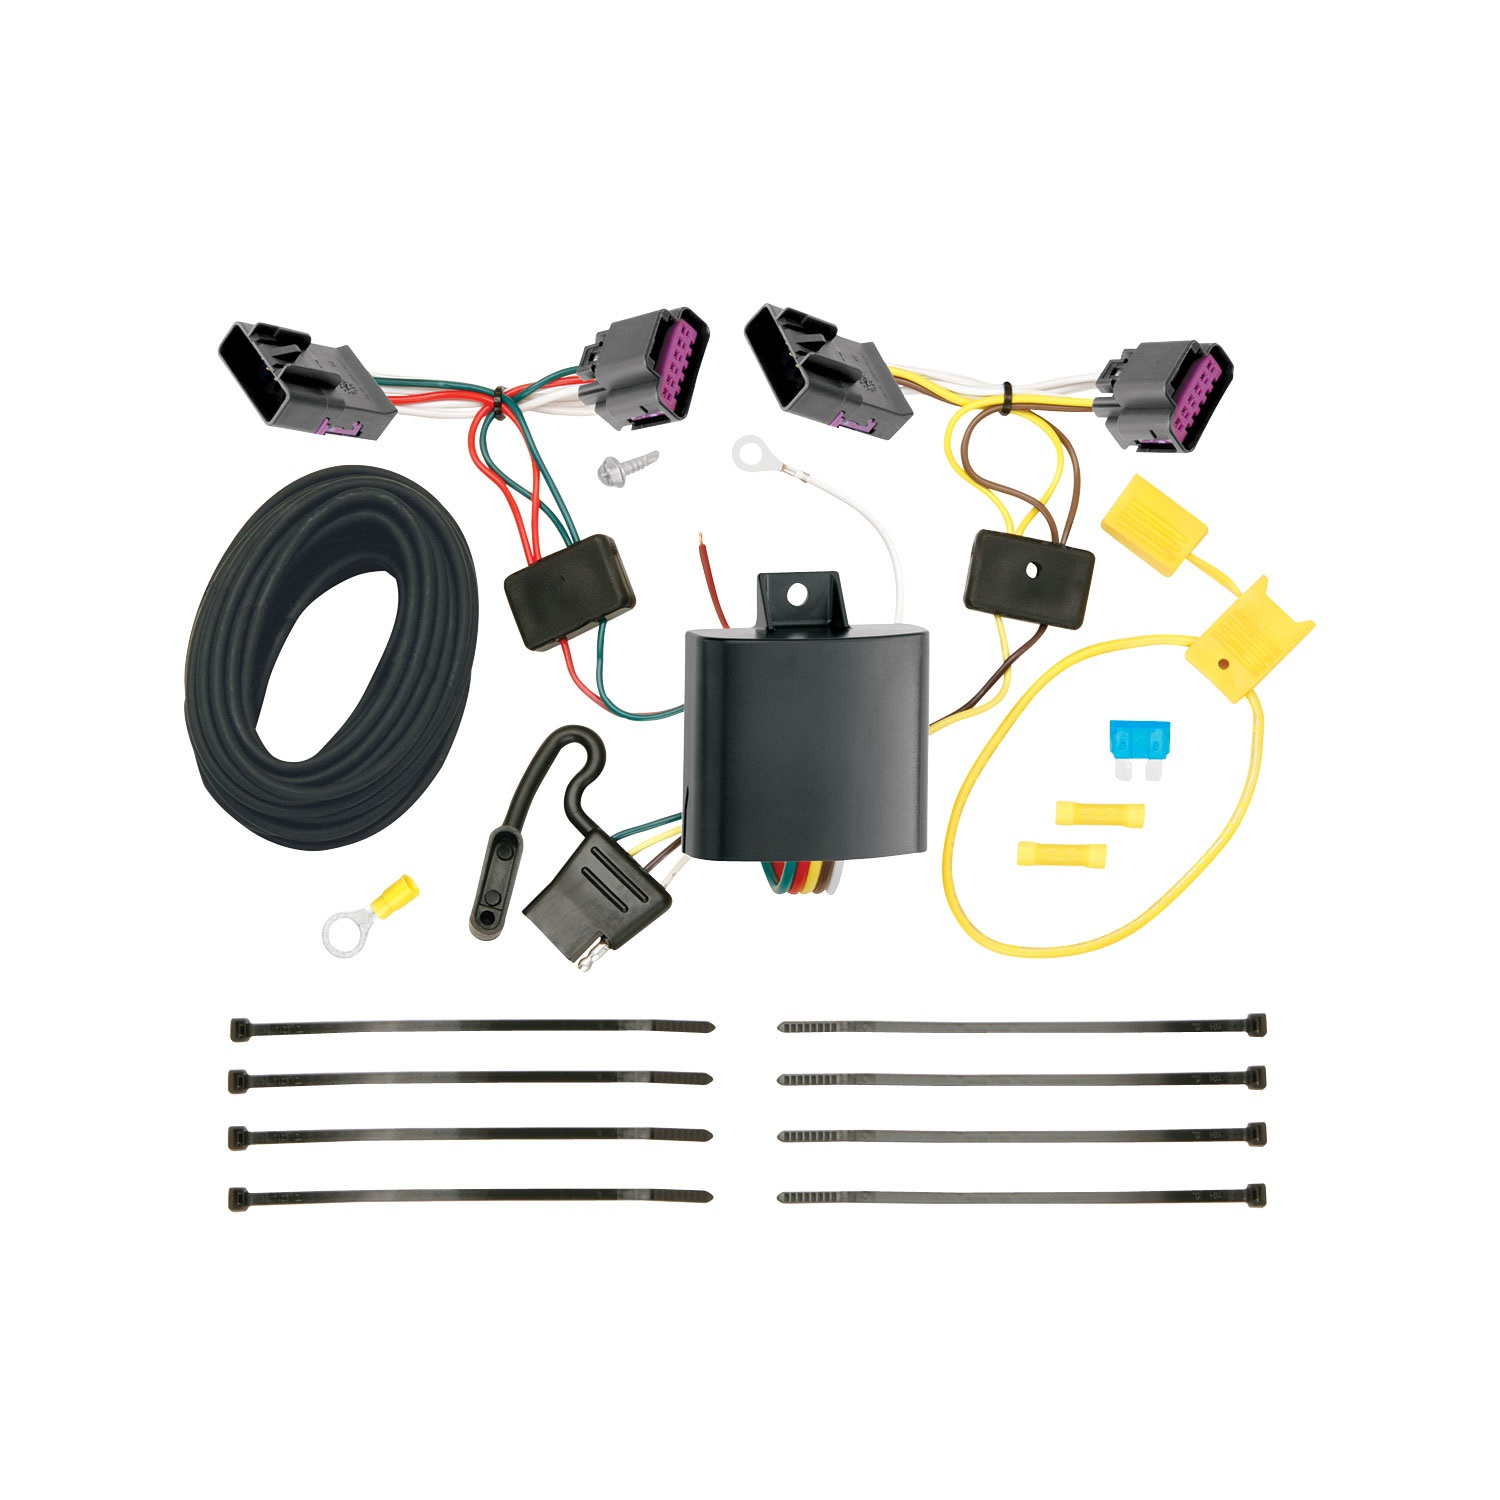 13-14 Encore T-One with Upgraded Circuit Protected Hd Modulite Replacement Auto Part, Easy to Install